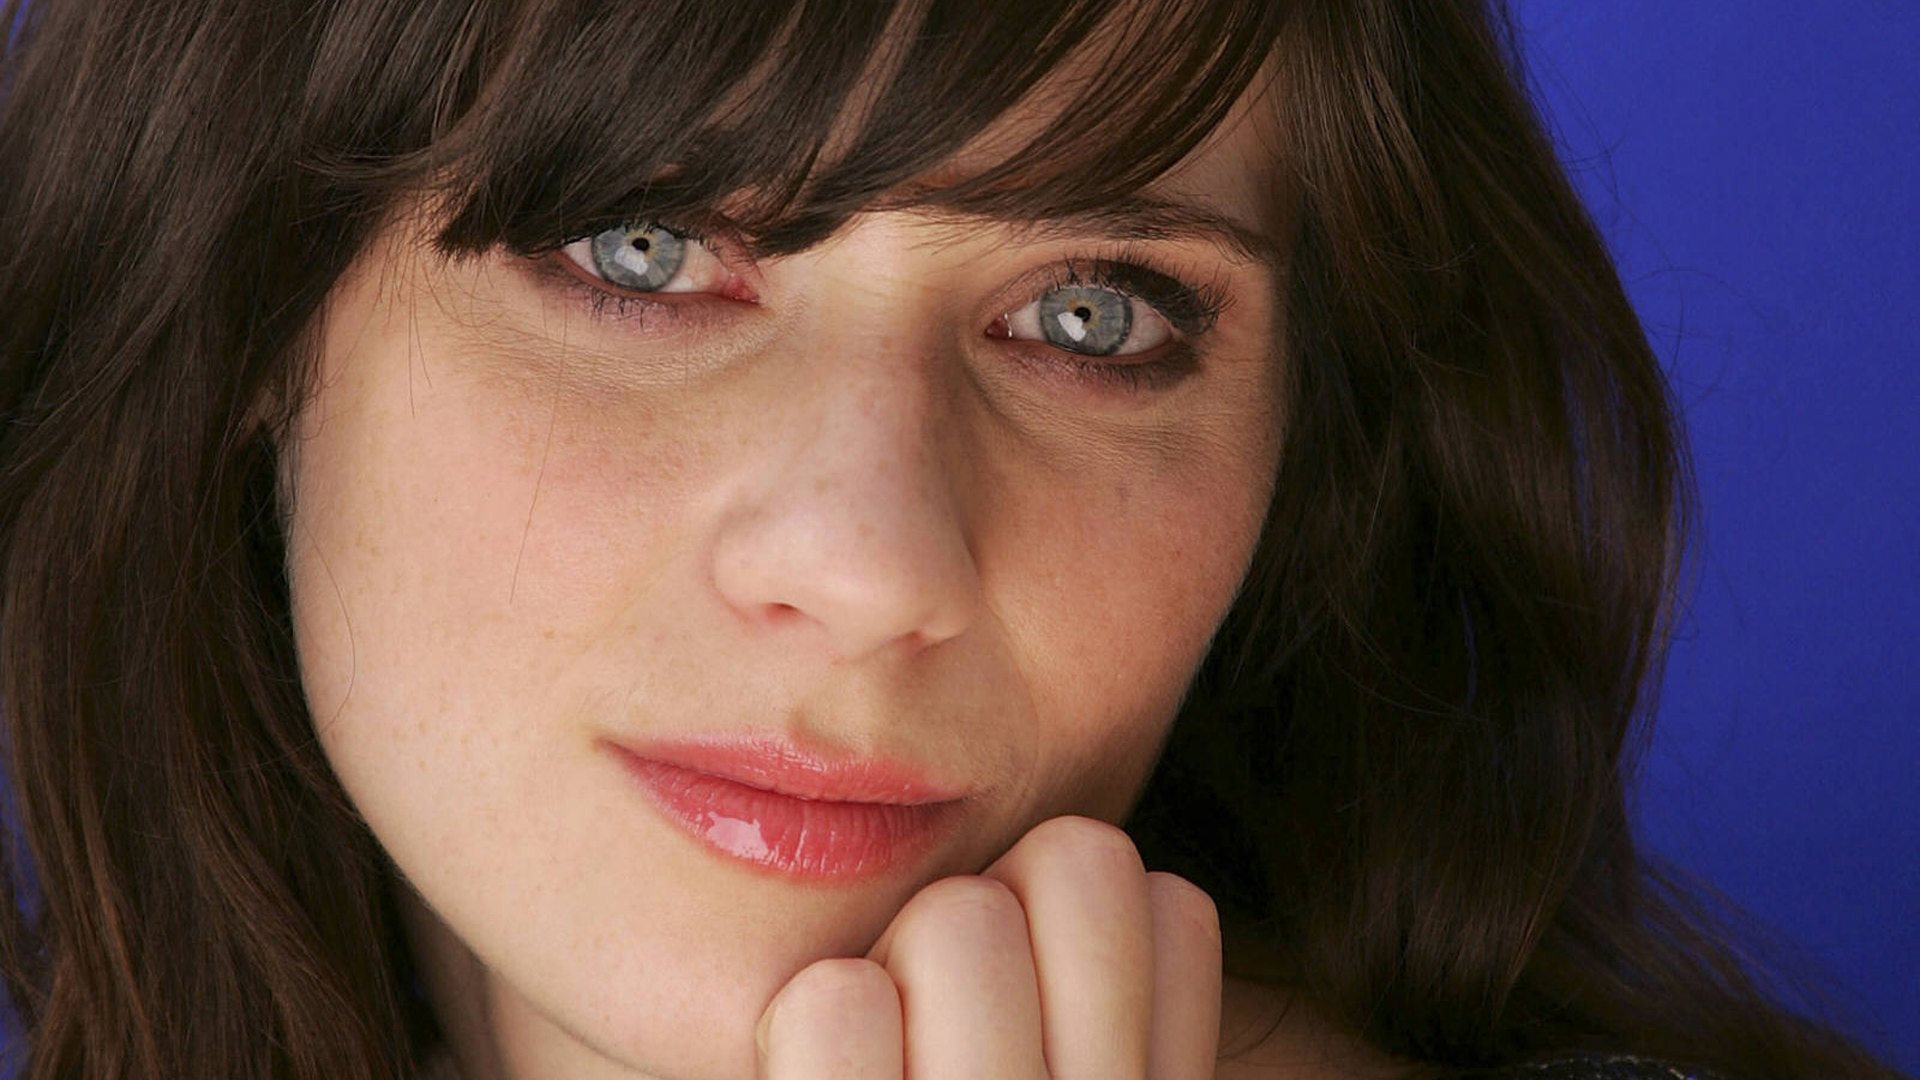 zooey deschanel eyes wallpaper background